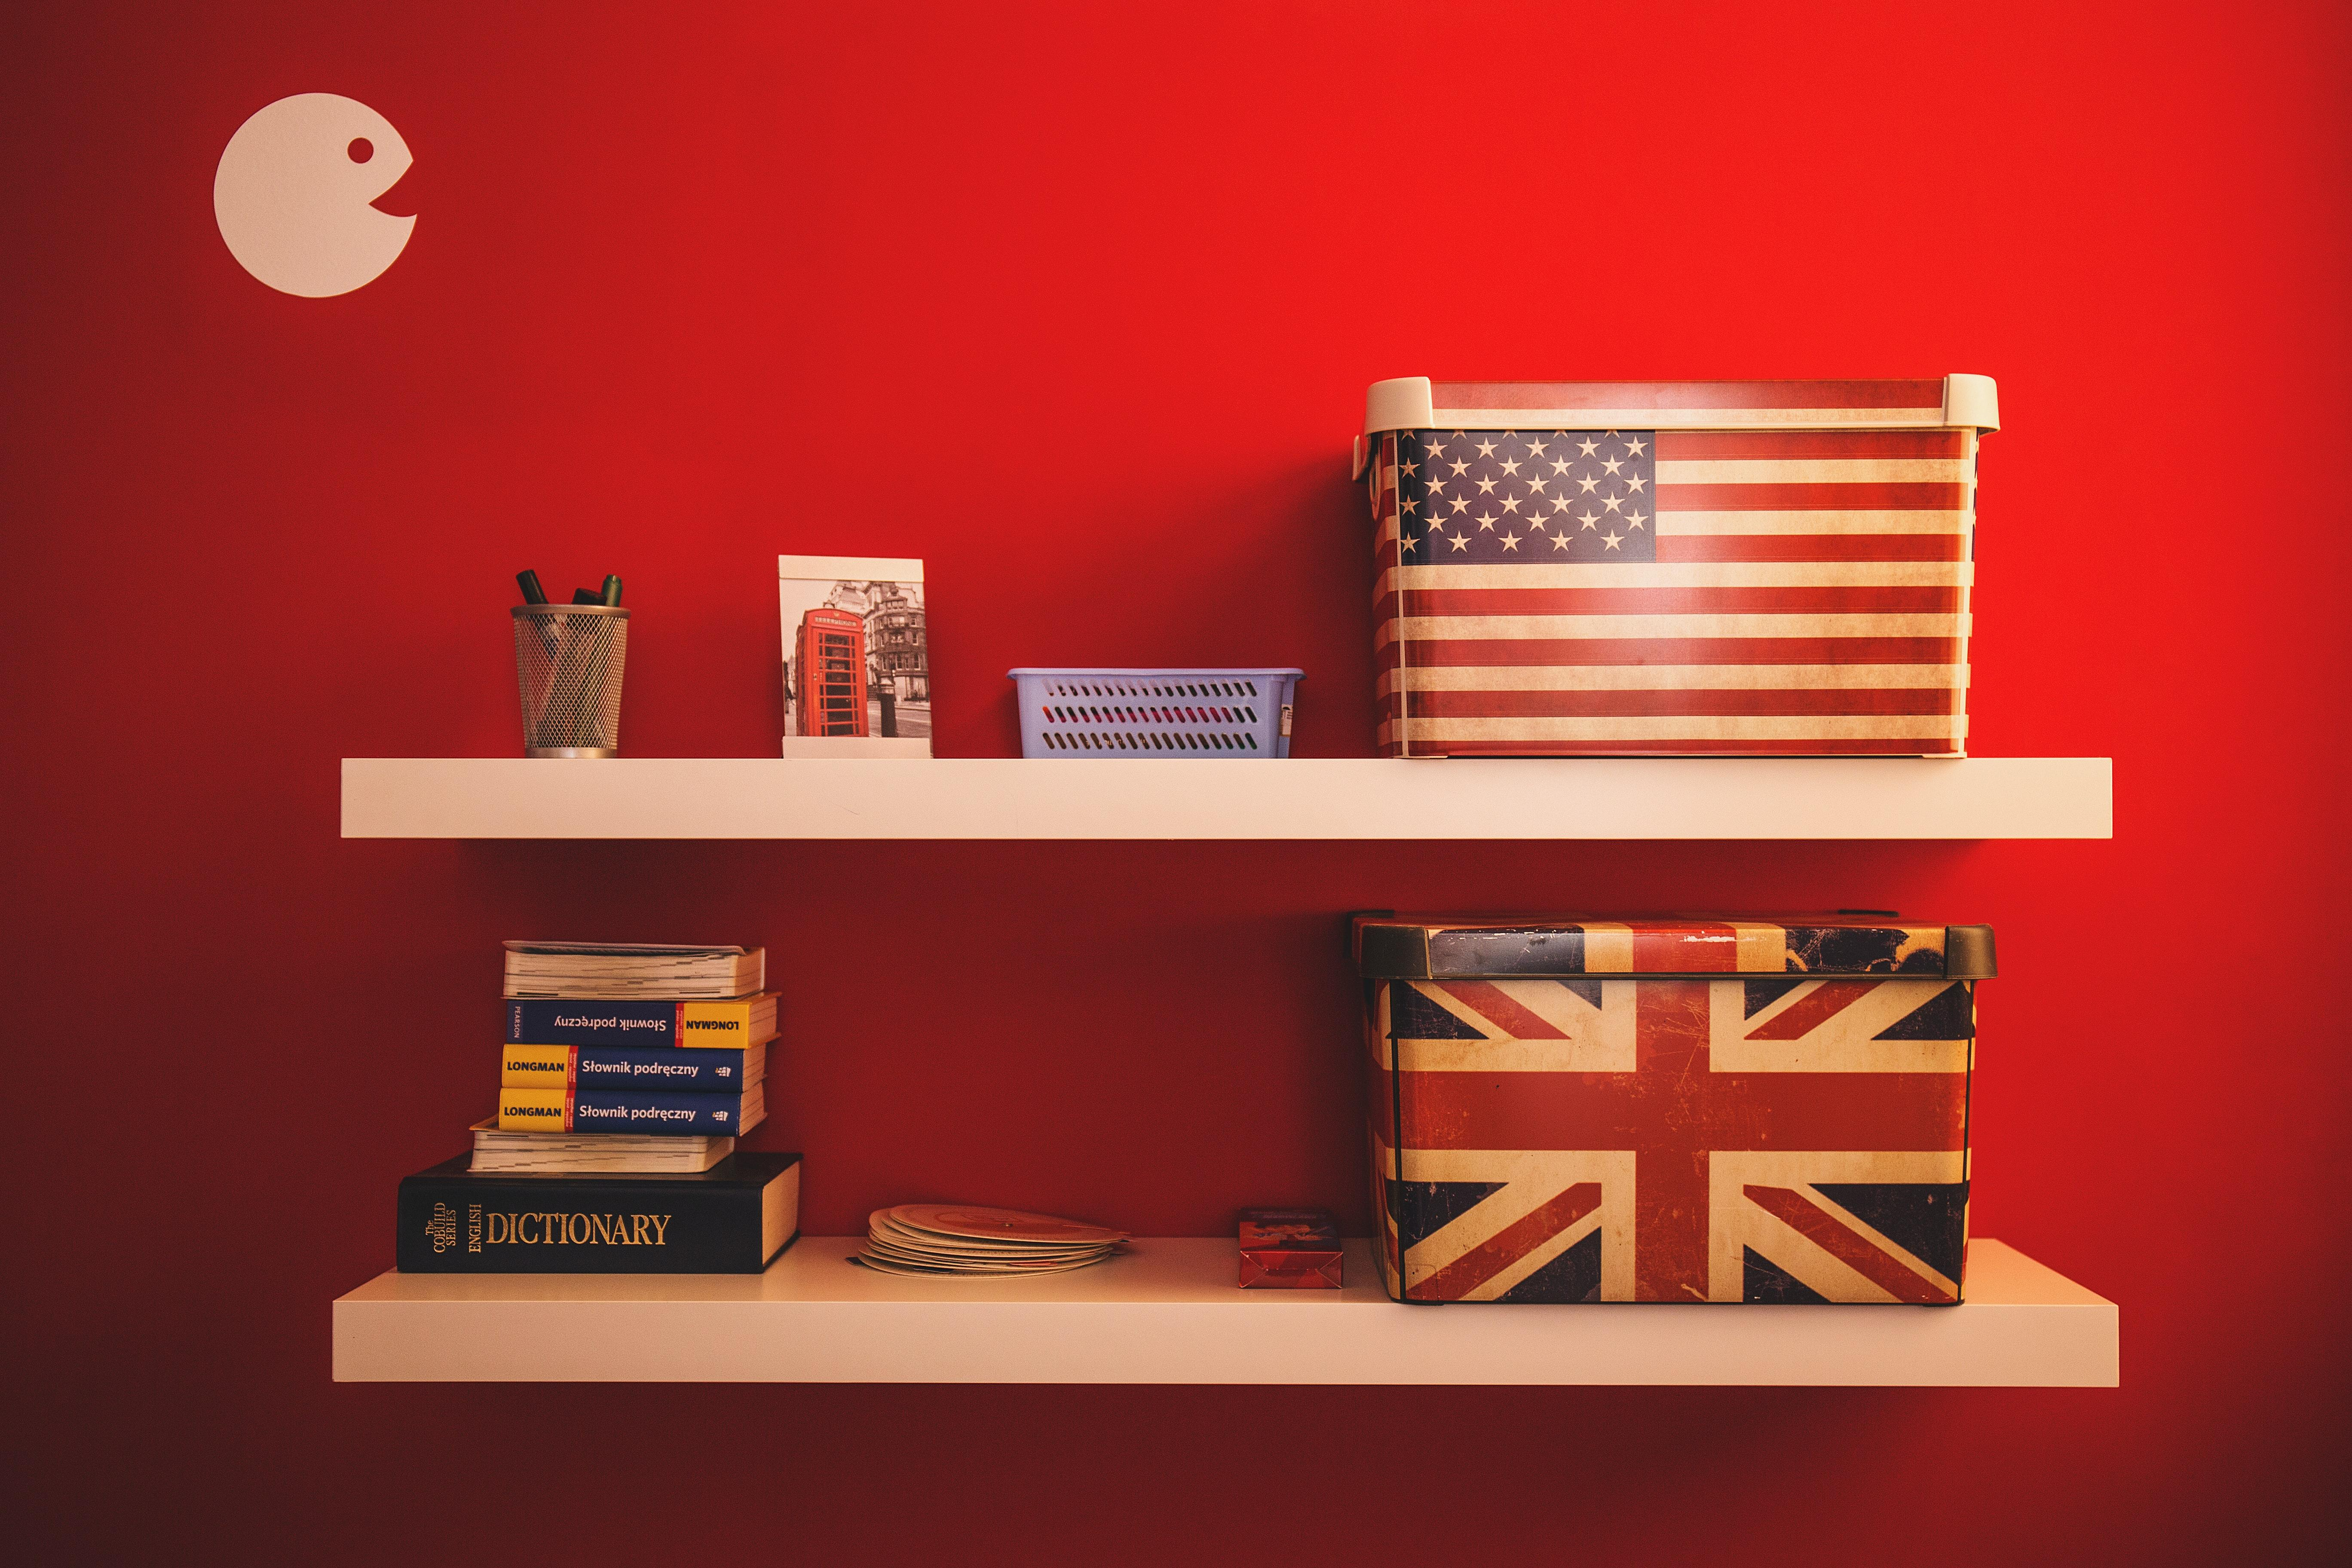 The differences between English and American English